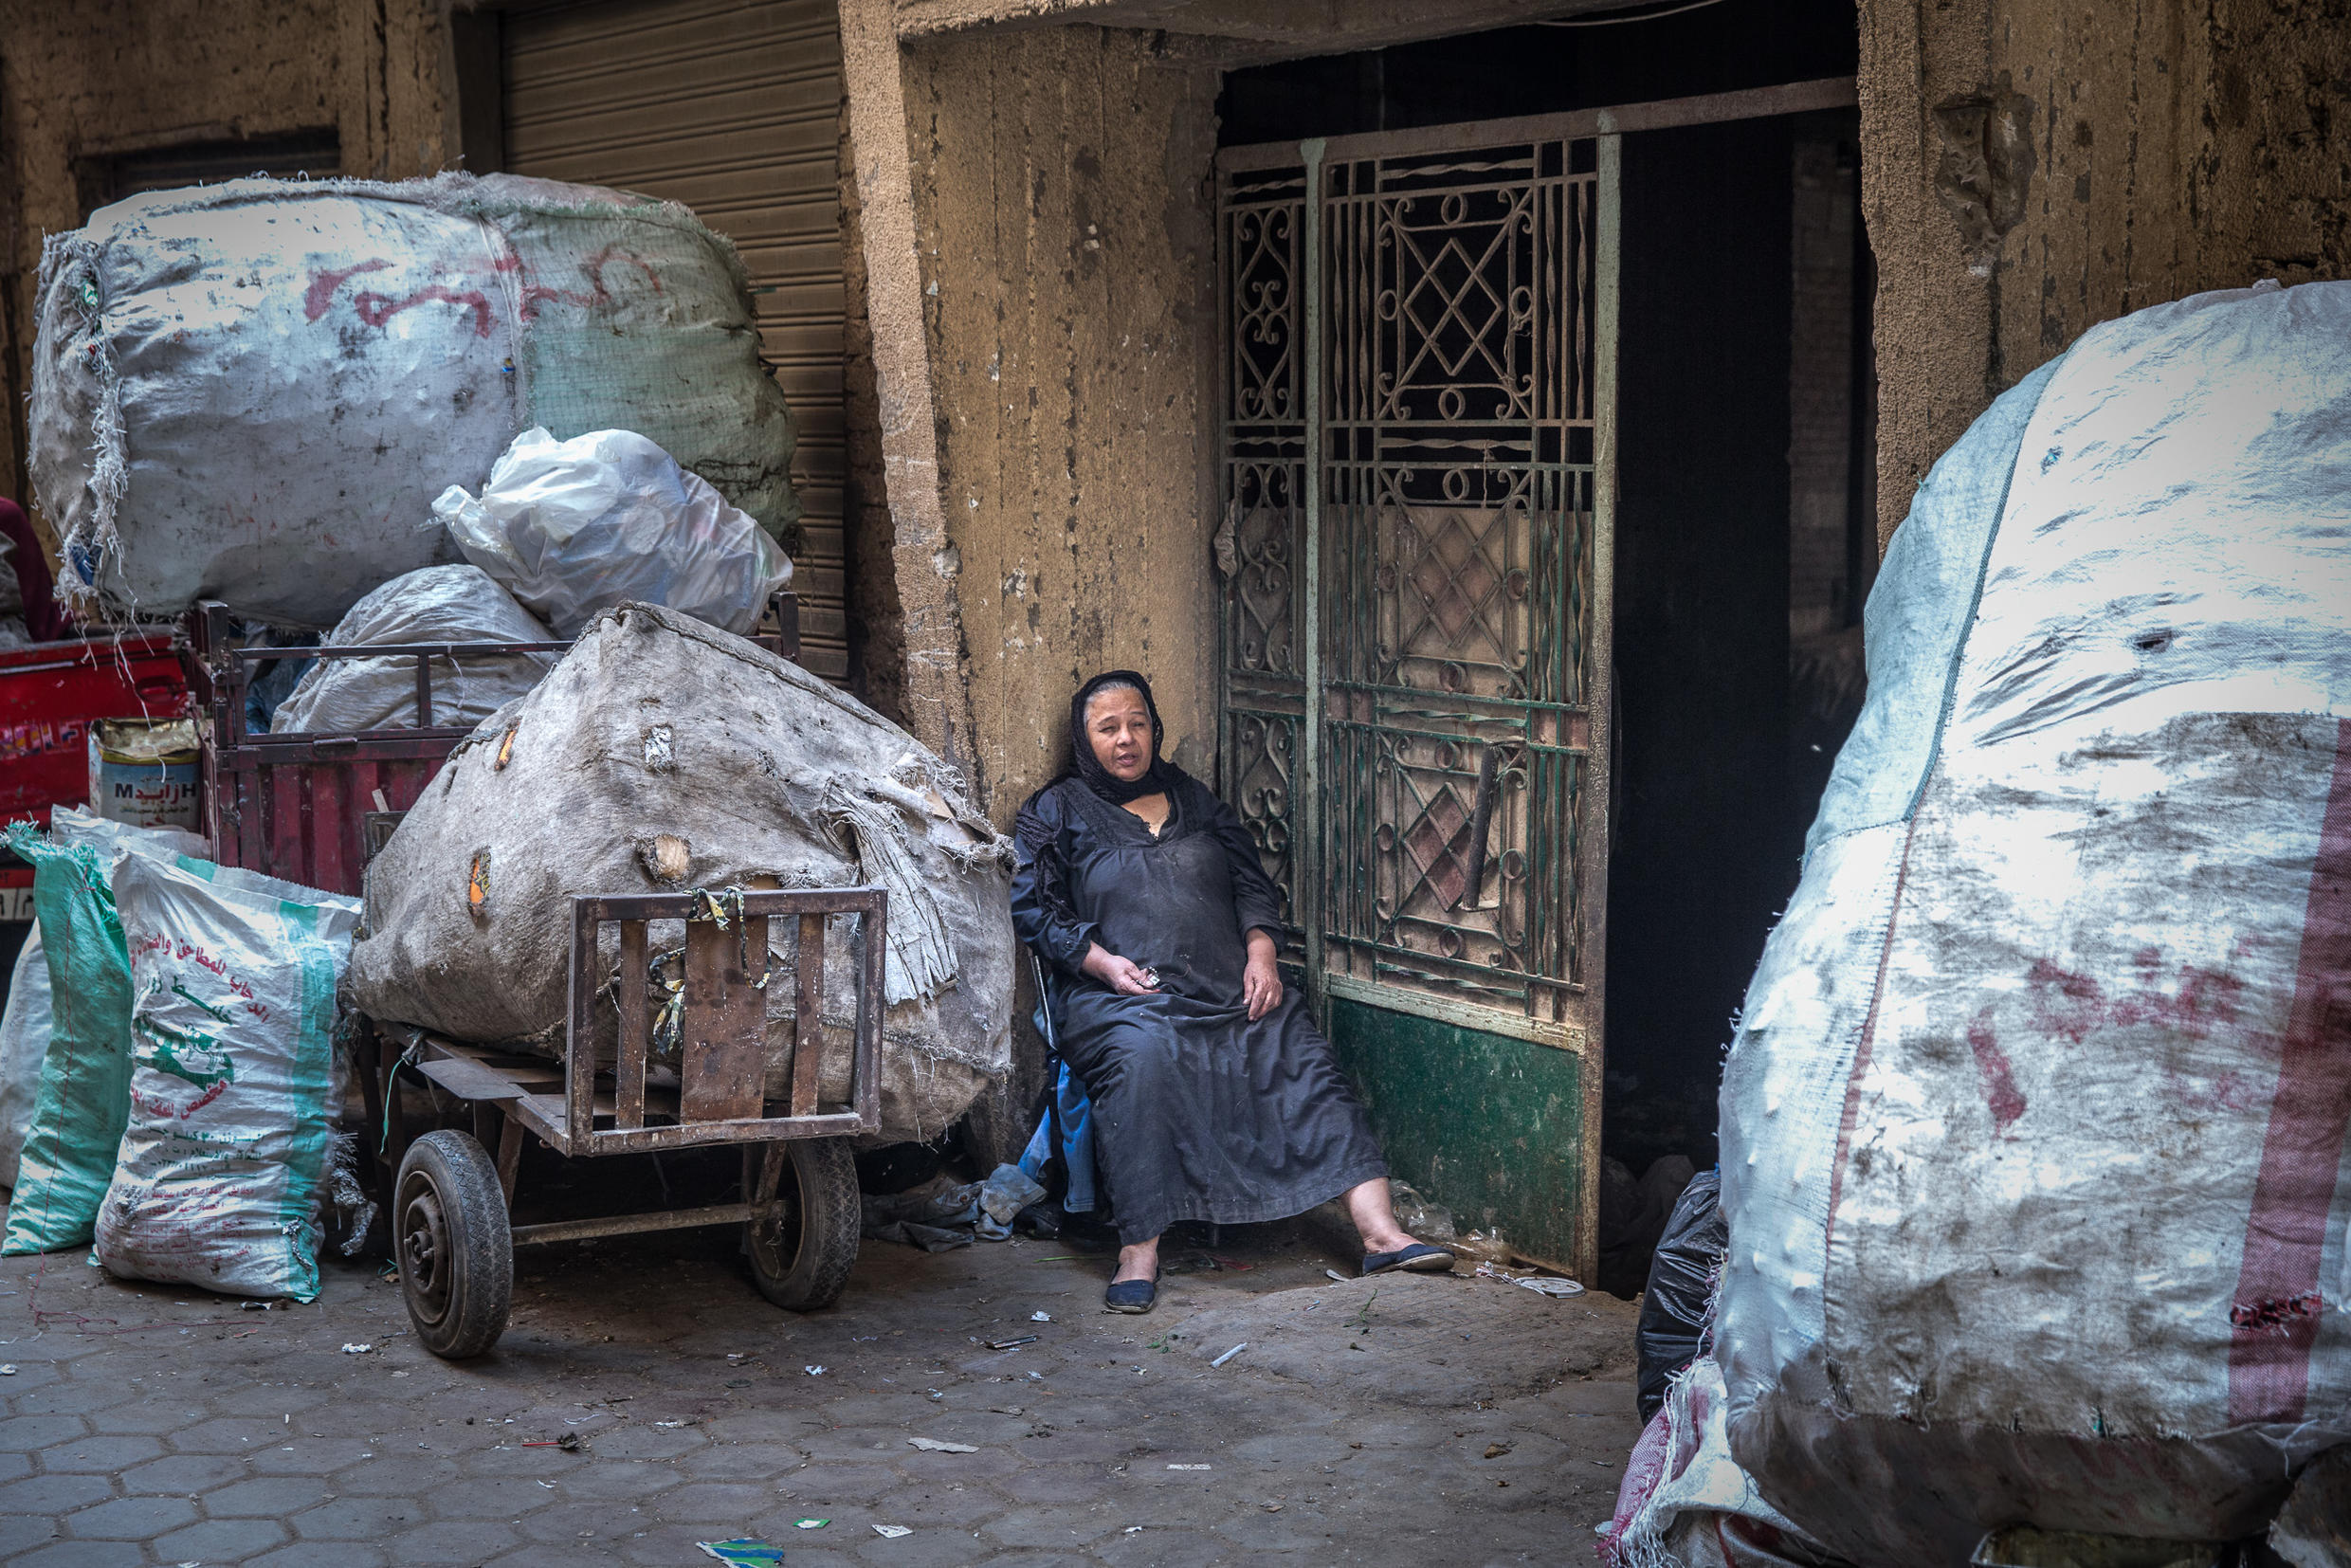 Woman takes a break from sorting garbage